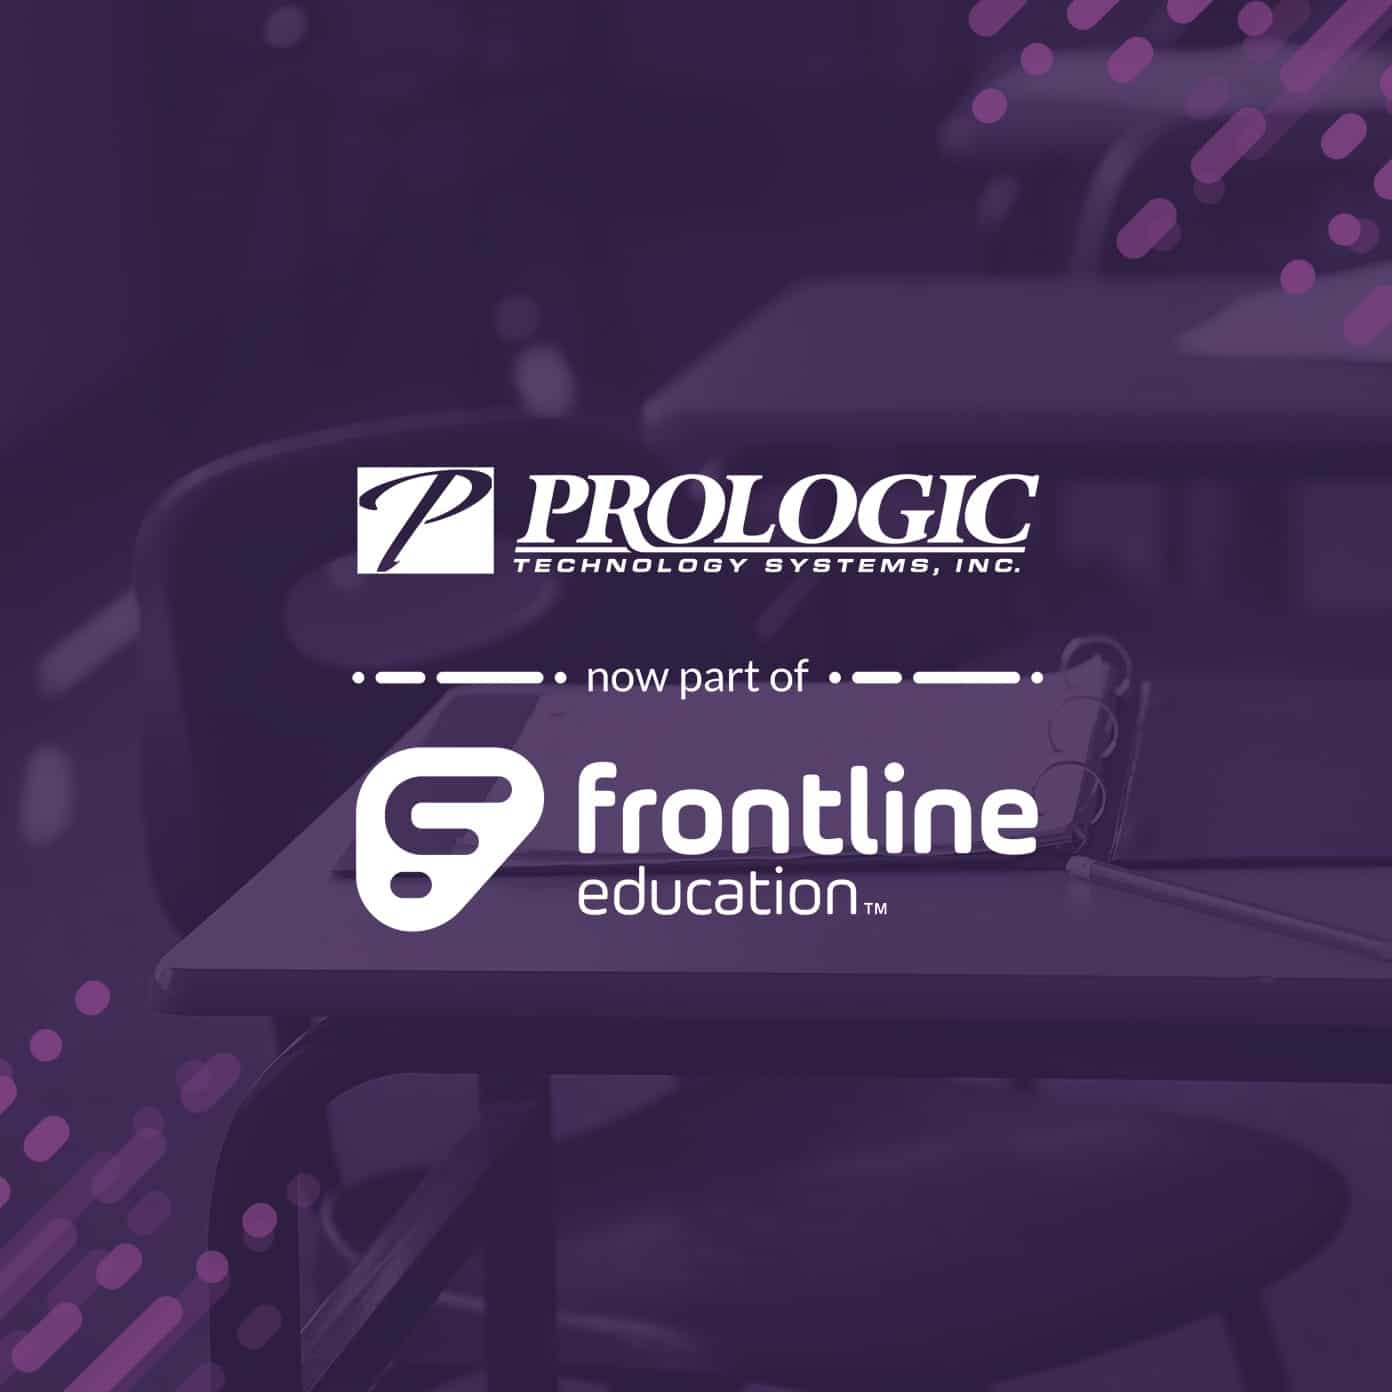 Frontline Education to acquire Prologic